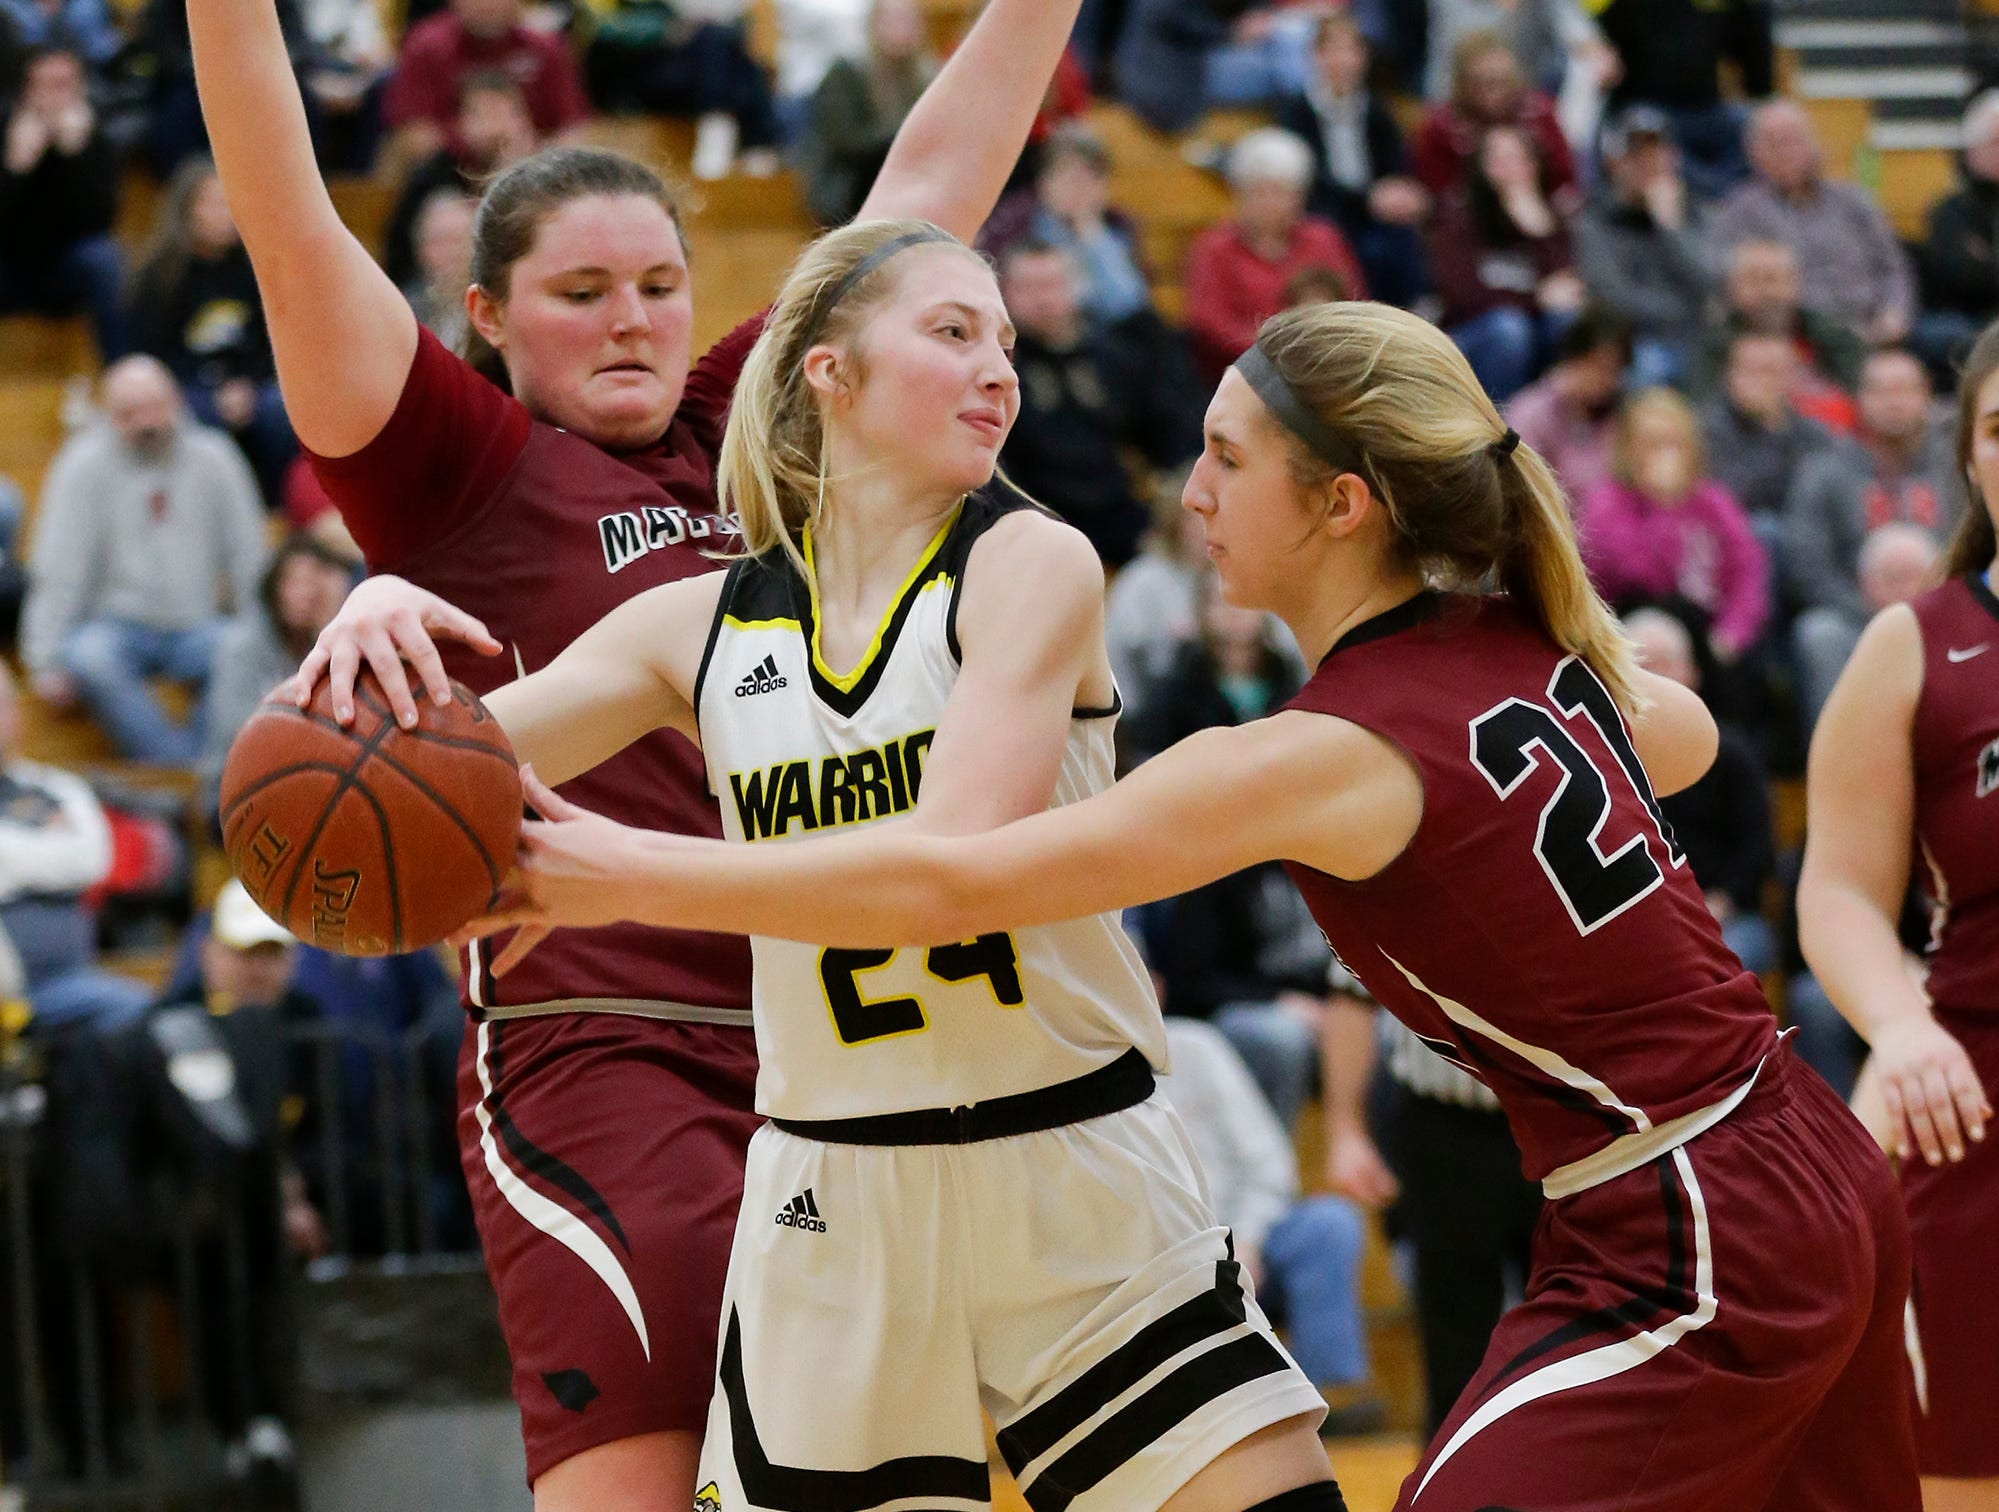 Waupun High School girls basketball's Peyton McGinnis (24) is defended by Mayville High School's Sydney Schultz (30) and Chloe Welak (21) Saturday, February 23, 2019 during their WIAA Division 4 sectional quarterfinal game in Waupun. Waupun won the game 62-45. Doug Raflik/USA TODAY NETWORK-Wisconsin